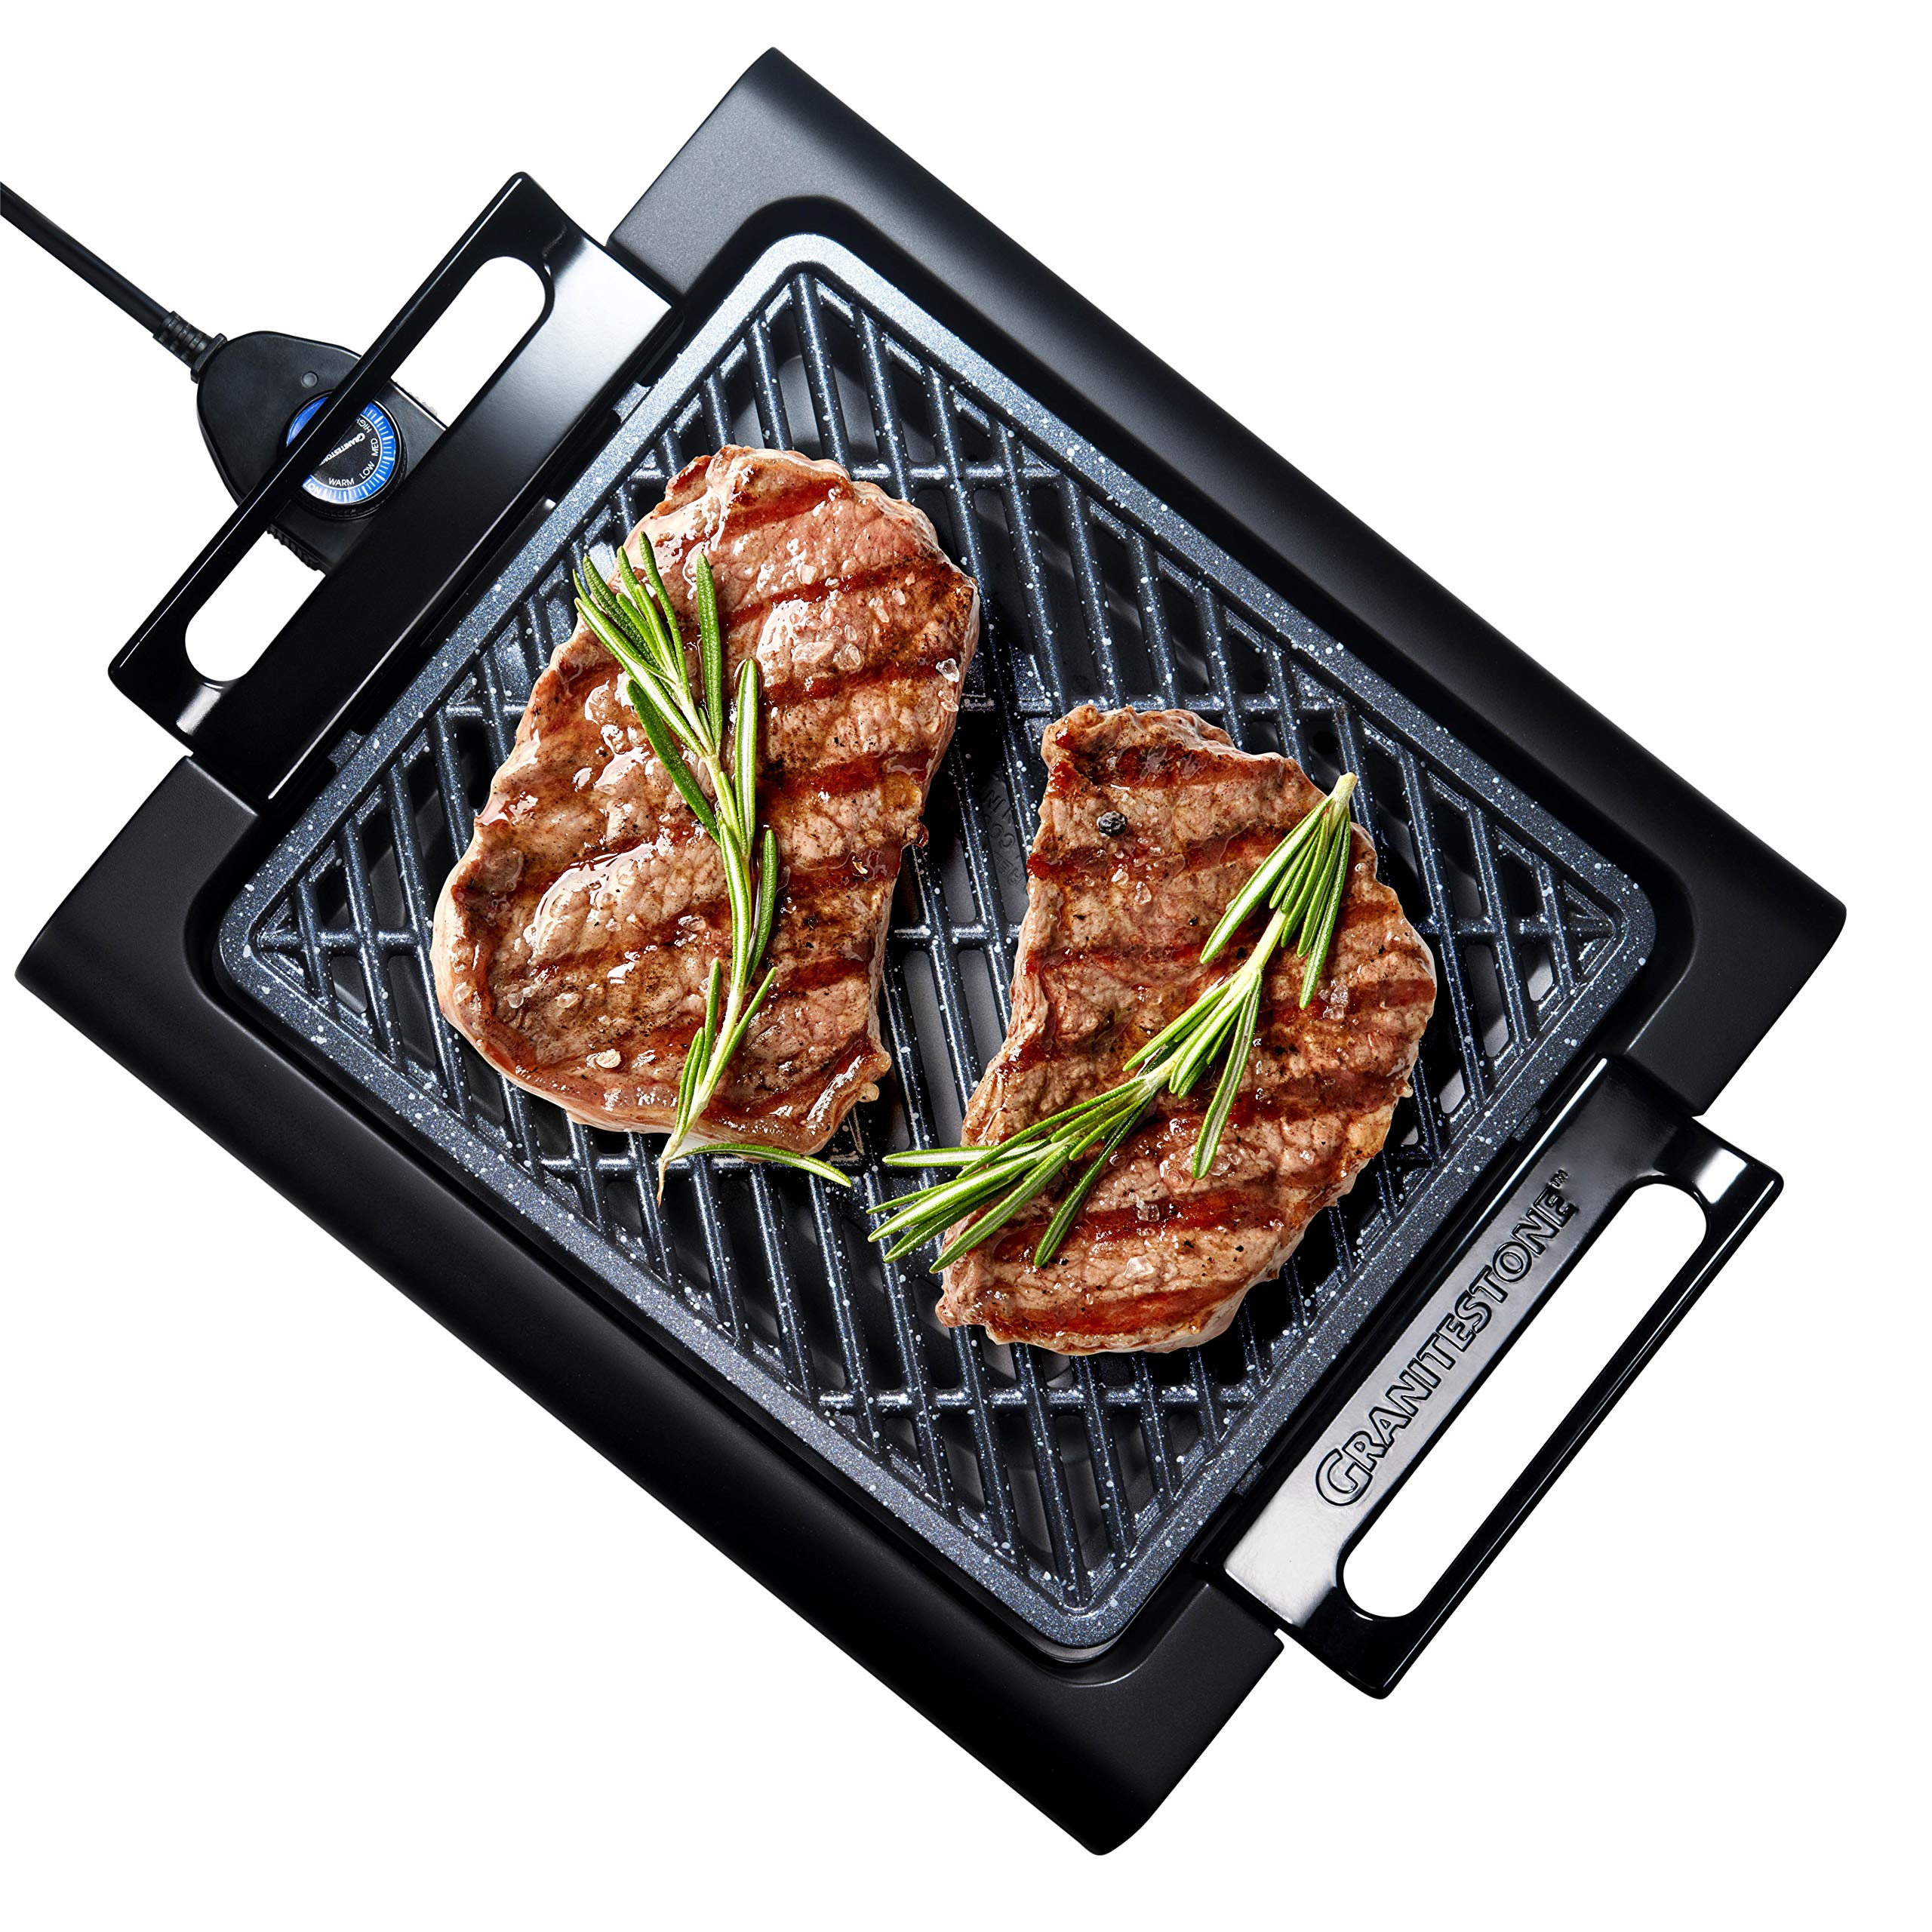 GRANITESTONE 2584 Indoor Electric Smoke-Less Grill with Cool-touch handles and adjustable Temperature Dial, Nonstick, PFOA-Free, Black 16 x 14'' As Seen On TV by GRANITESTONE